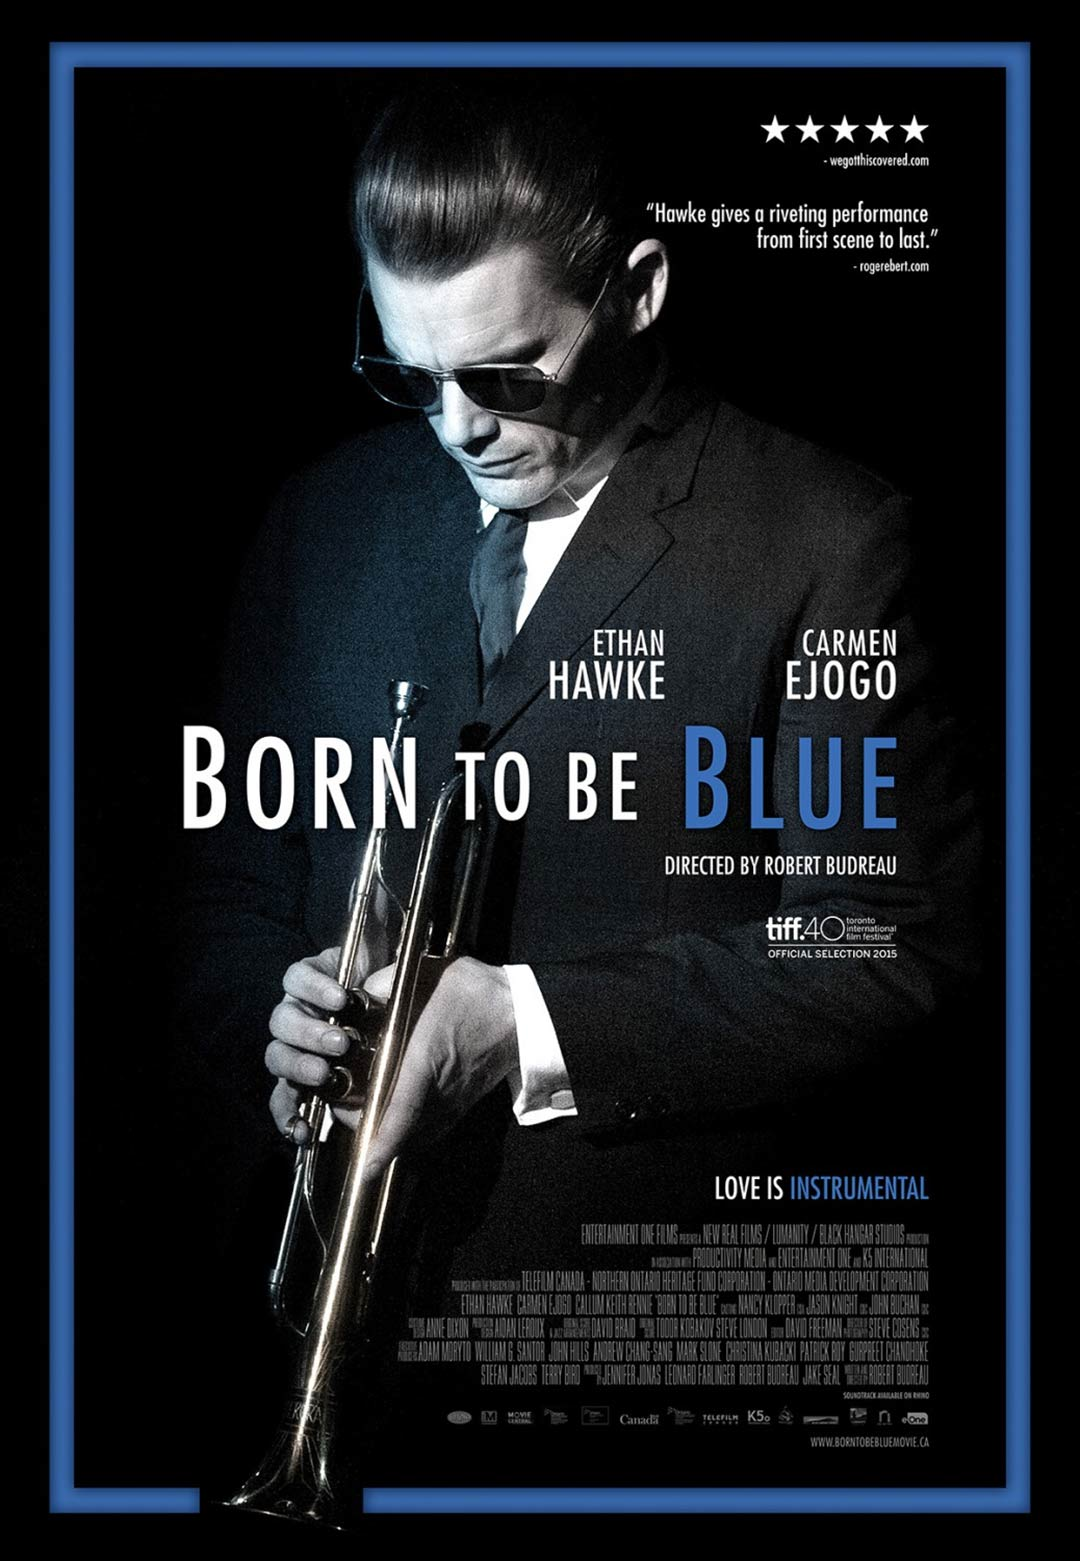 Born-to-Be-Blue-2016-YeniFragman